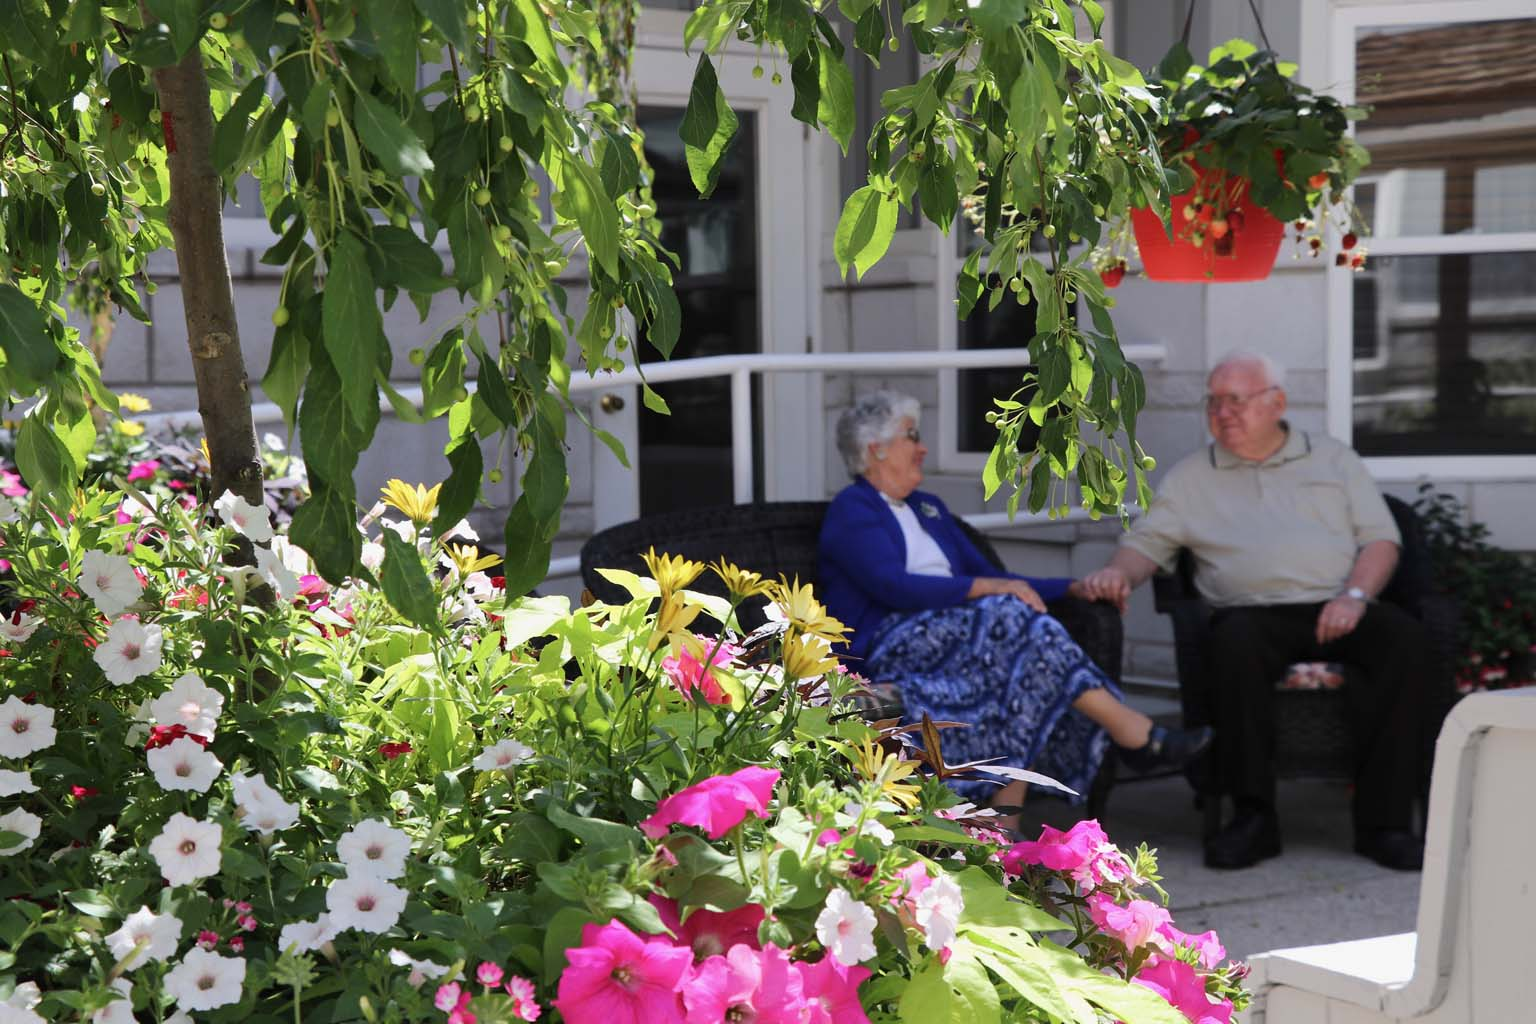 Residents in courtyard